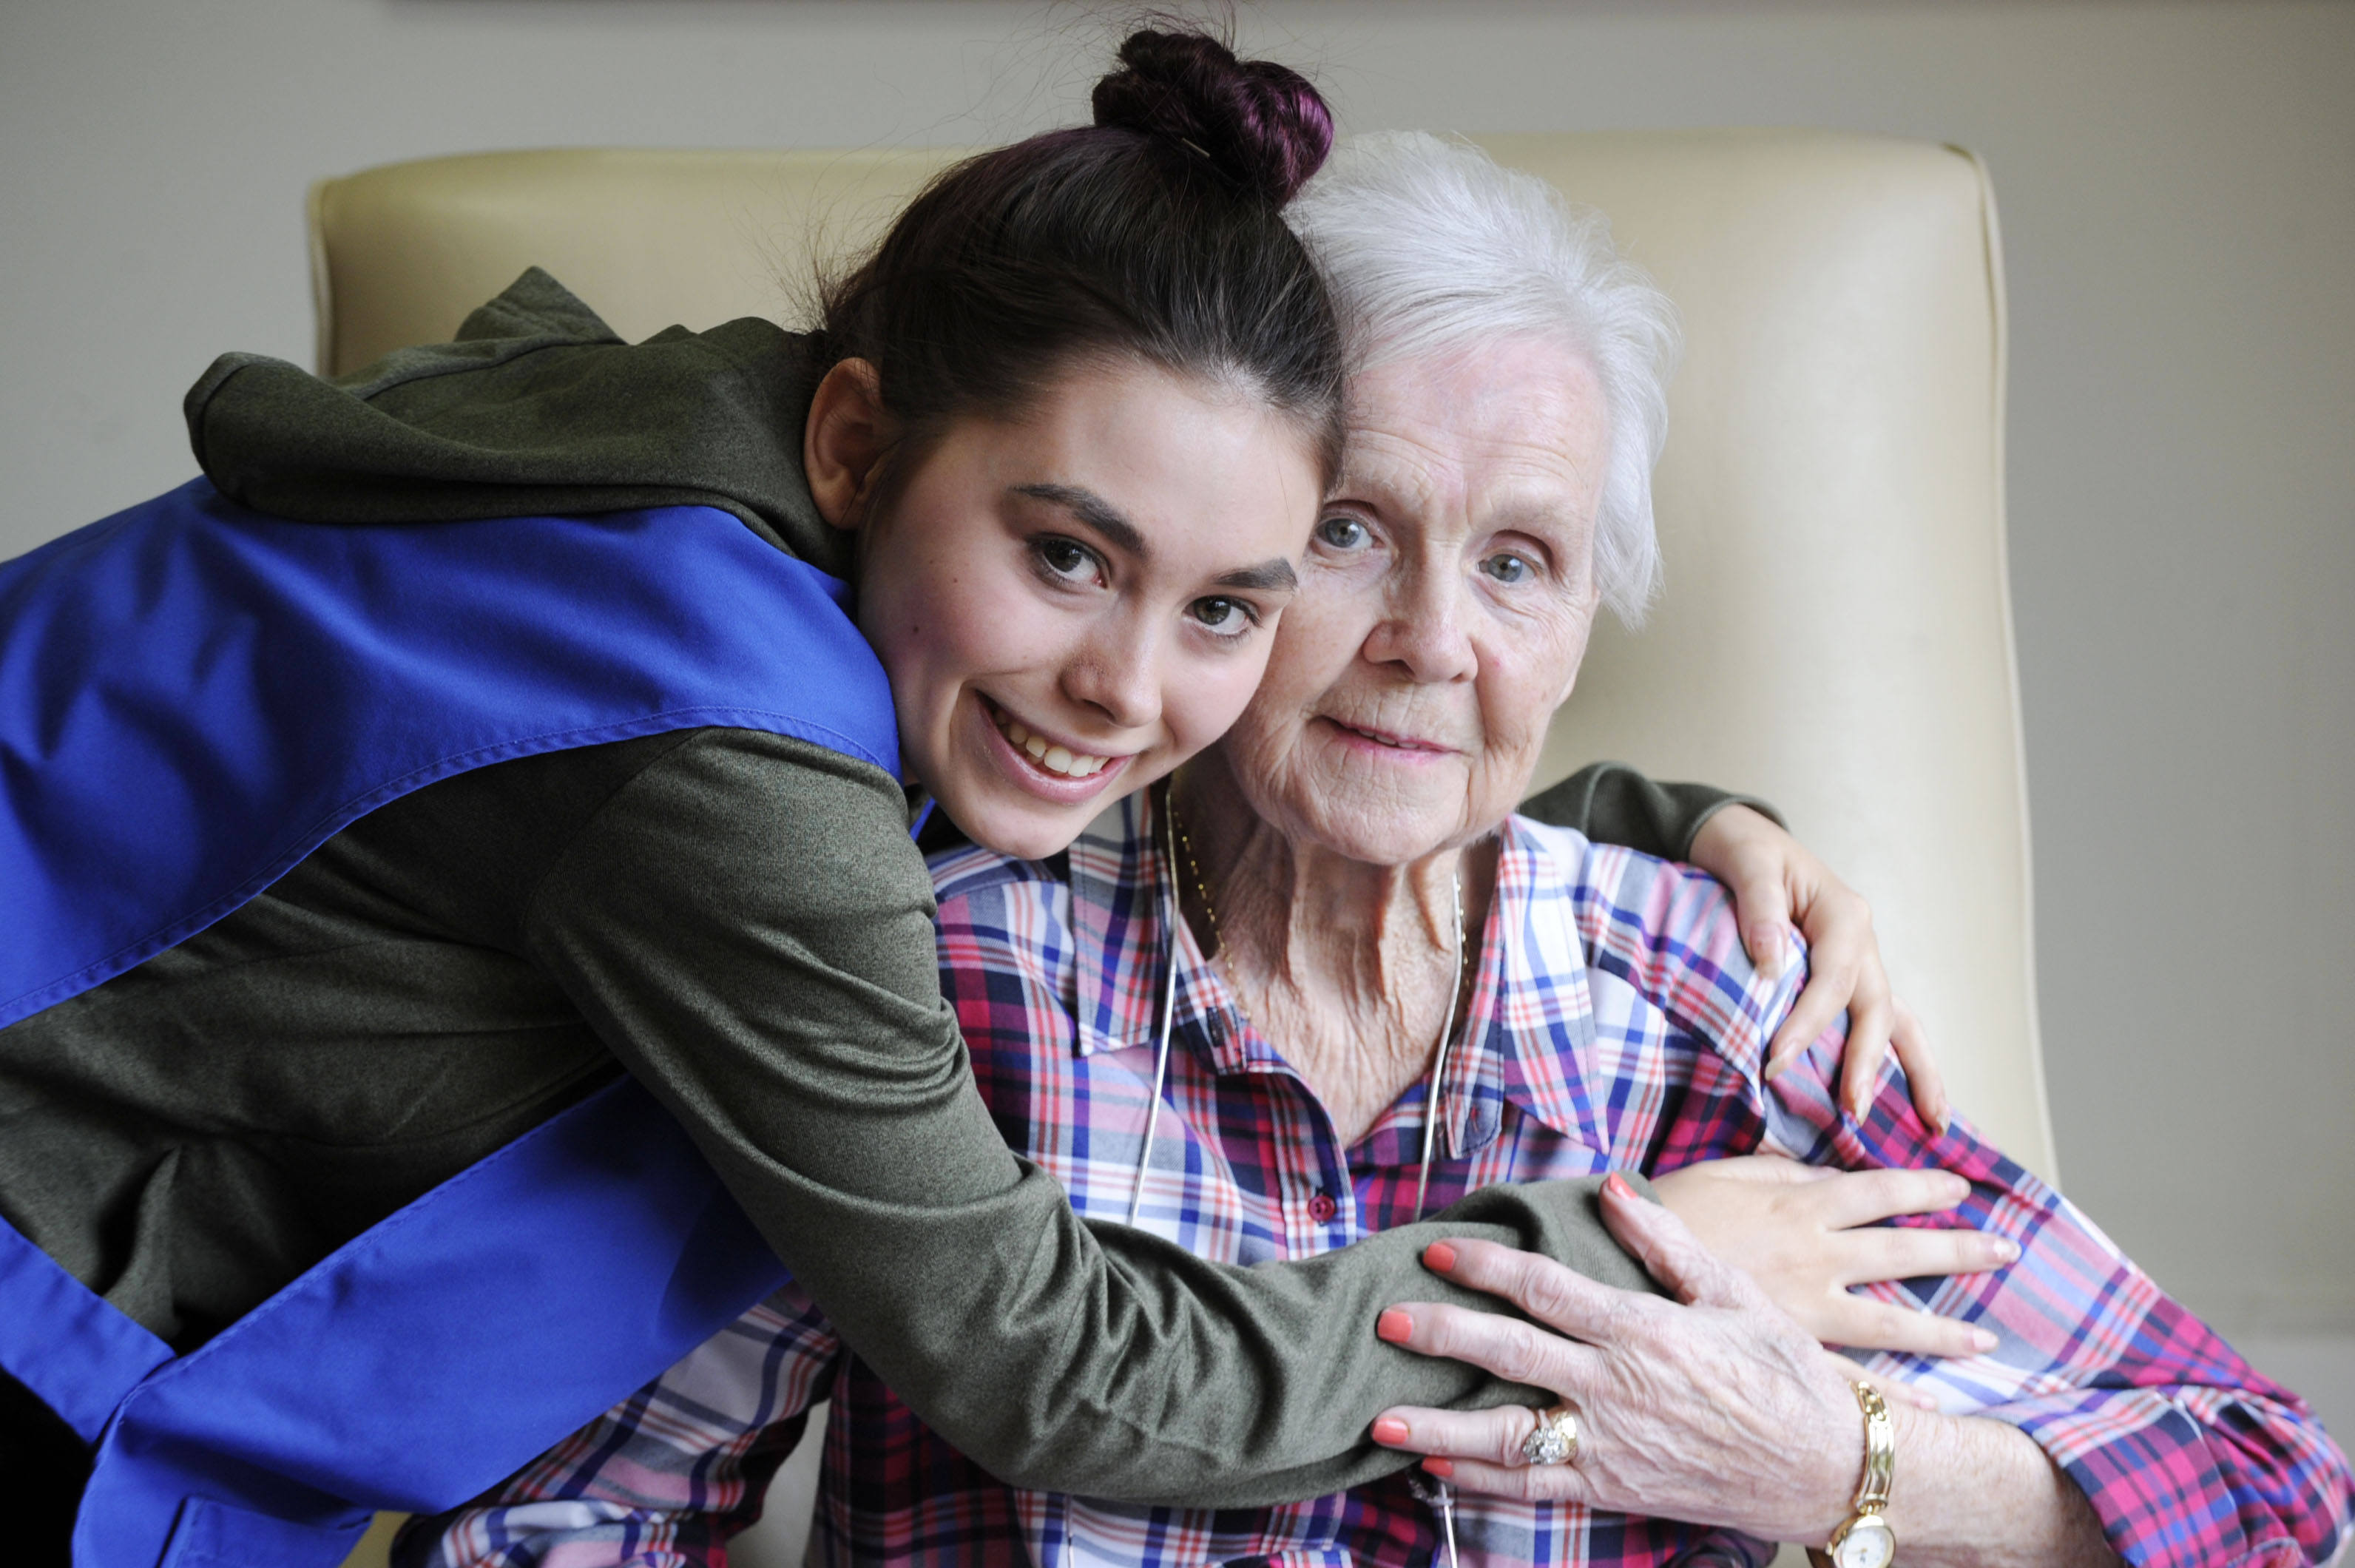 Care investment will support happier, healthier lives at home